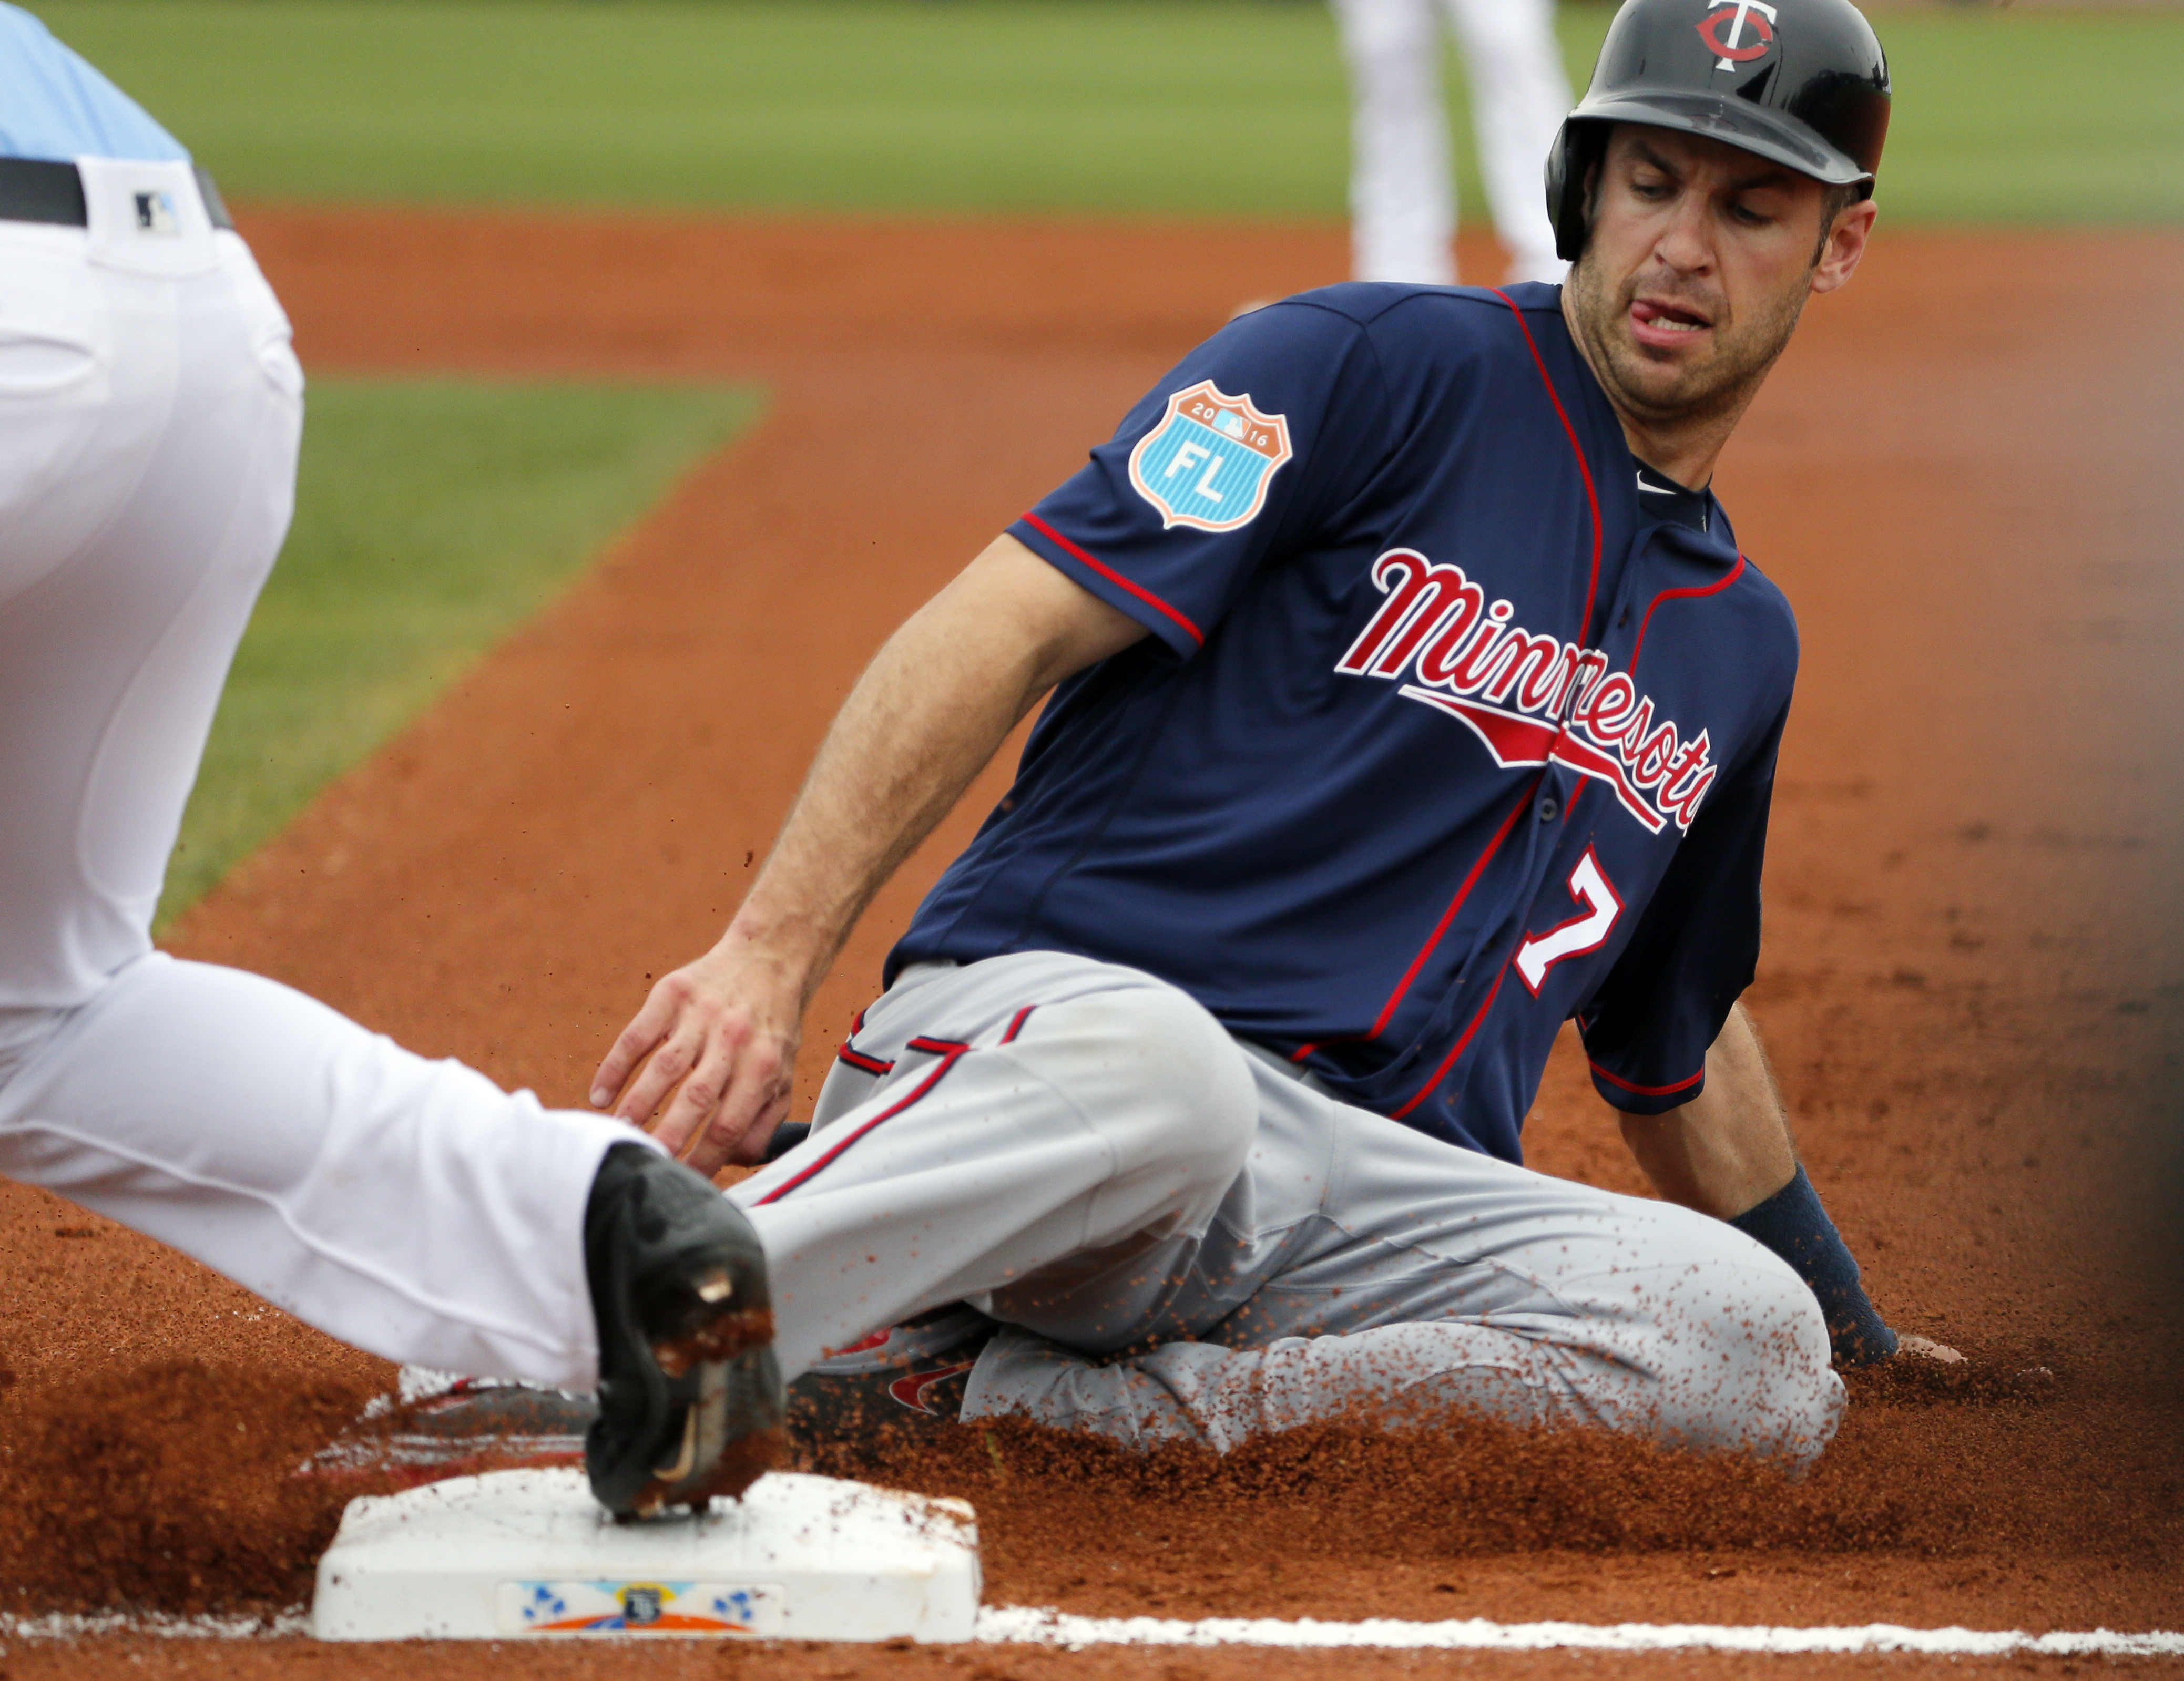 Minnesota Twins' Joe Mauer is forced out by Tampa Bay Rays' James Loney, left, trying to get back to first after Miguel Sano lined out to Tampa Bay Rays third baseman Evan Longoria in the first inning of a spring training baseball game, Friday, March 25,